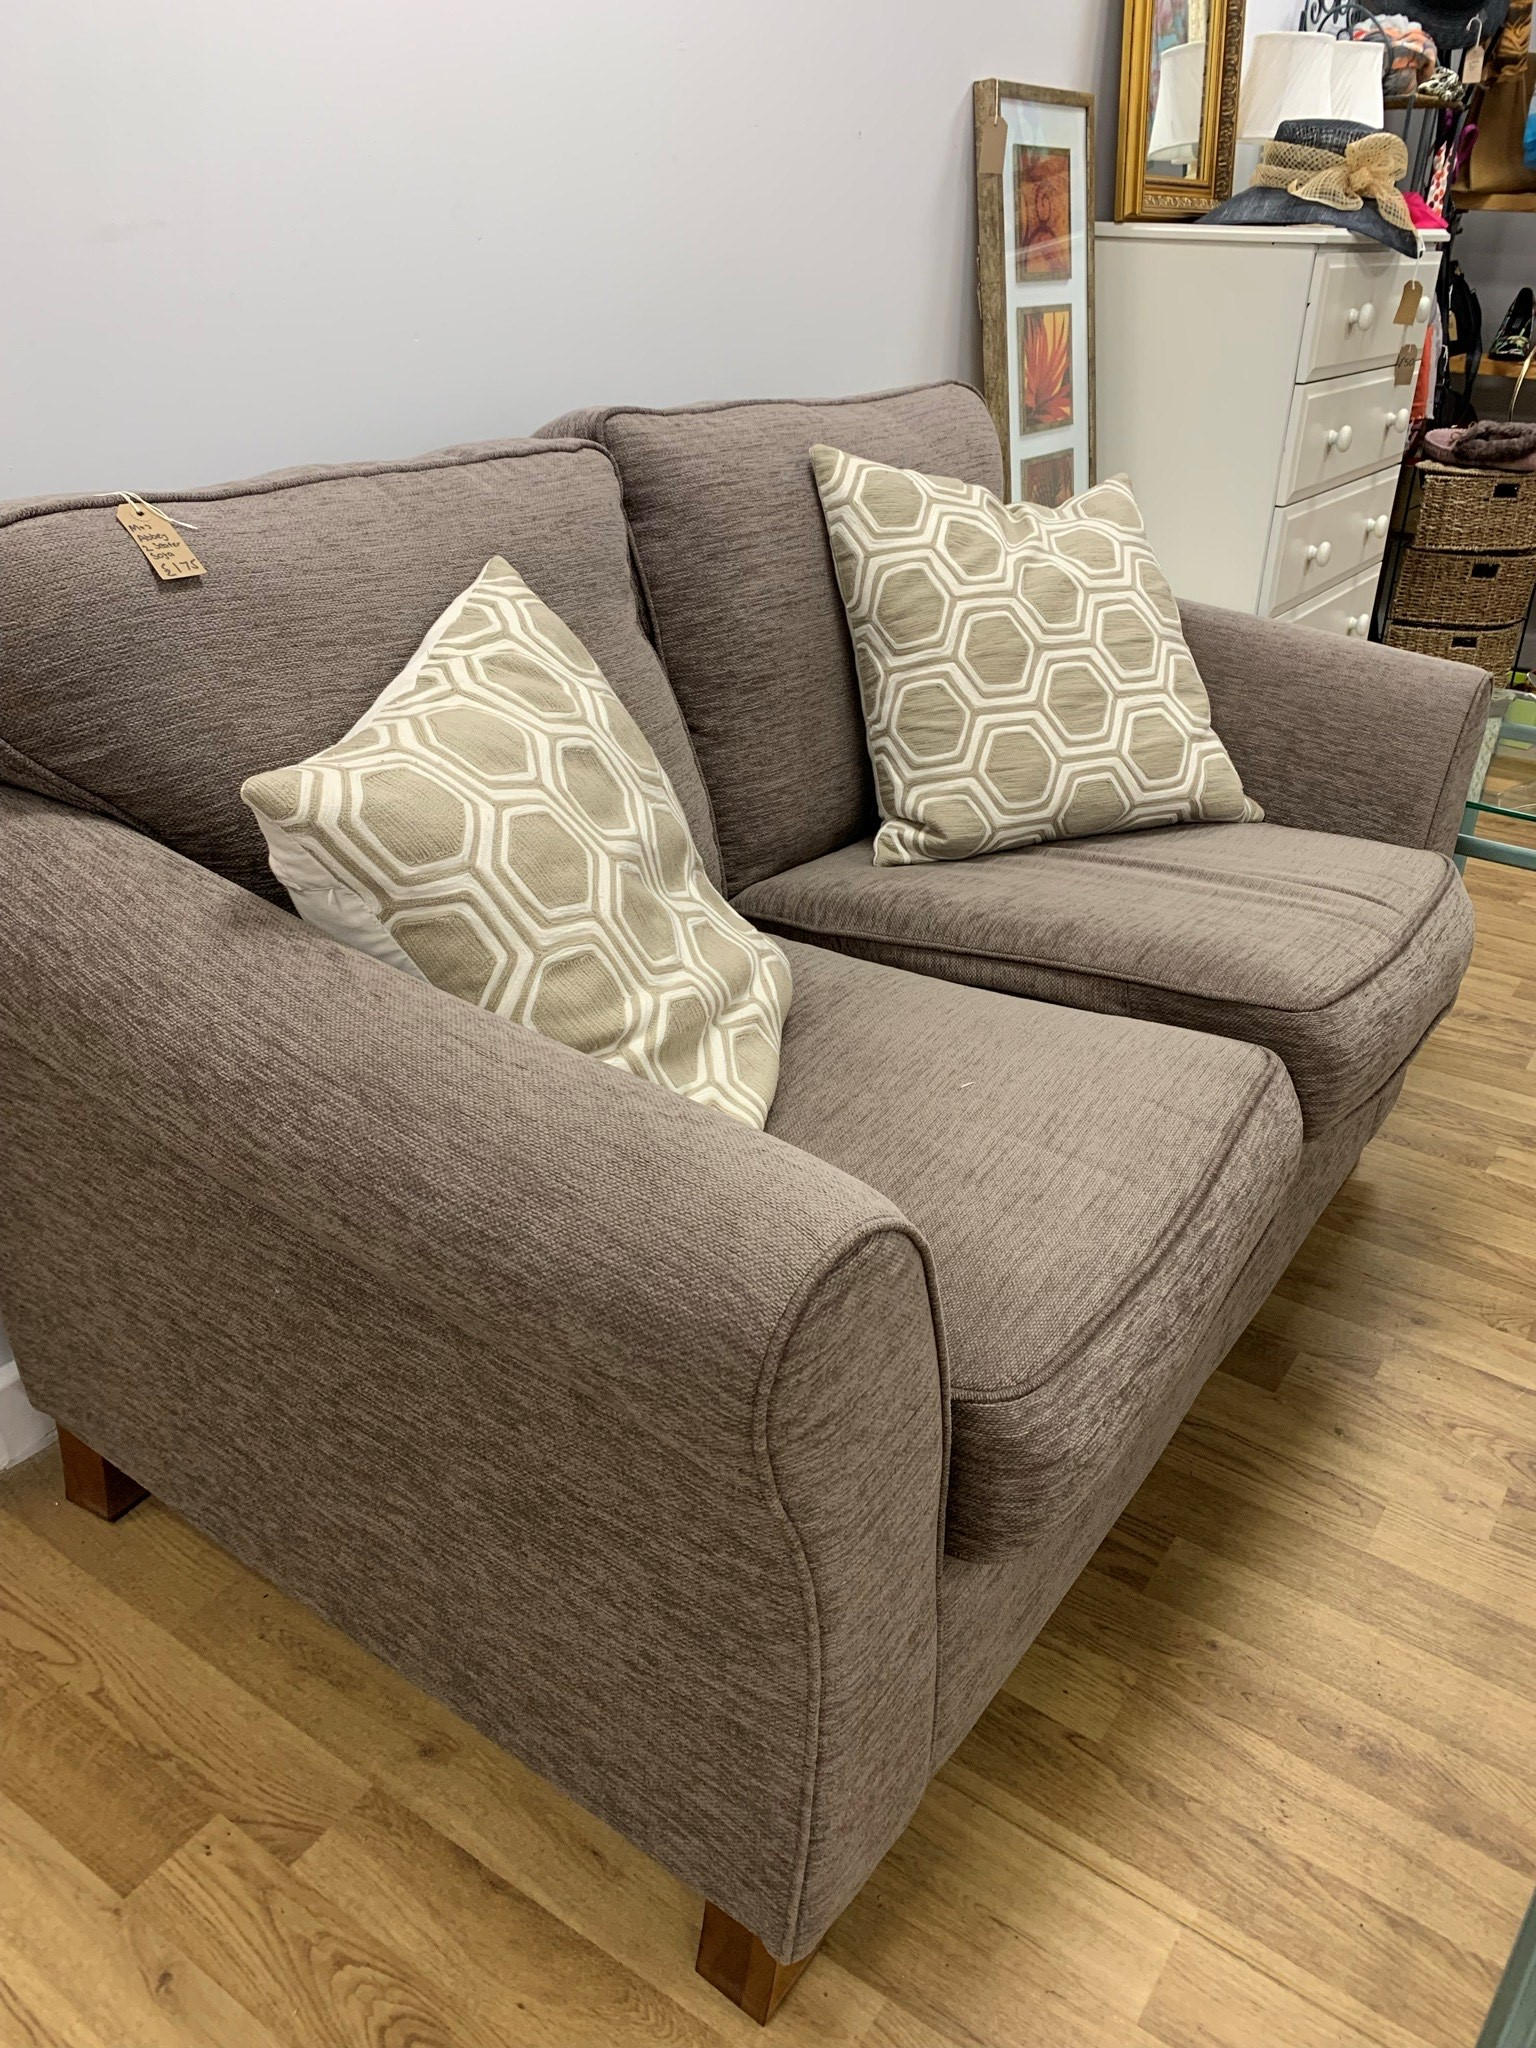 Bargain furniture – helping fund patient care at East Cheshire Hospice